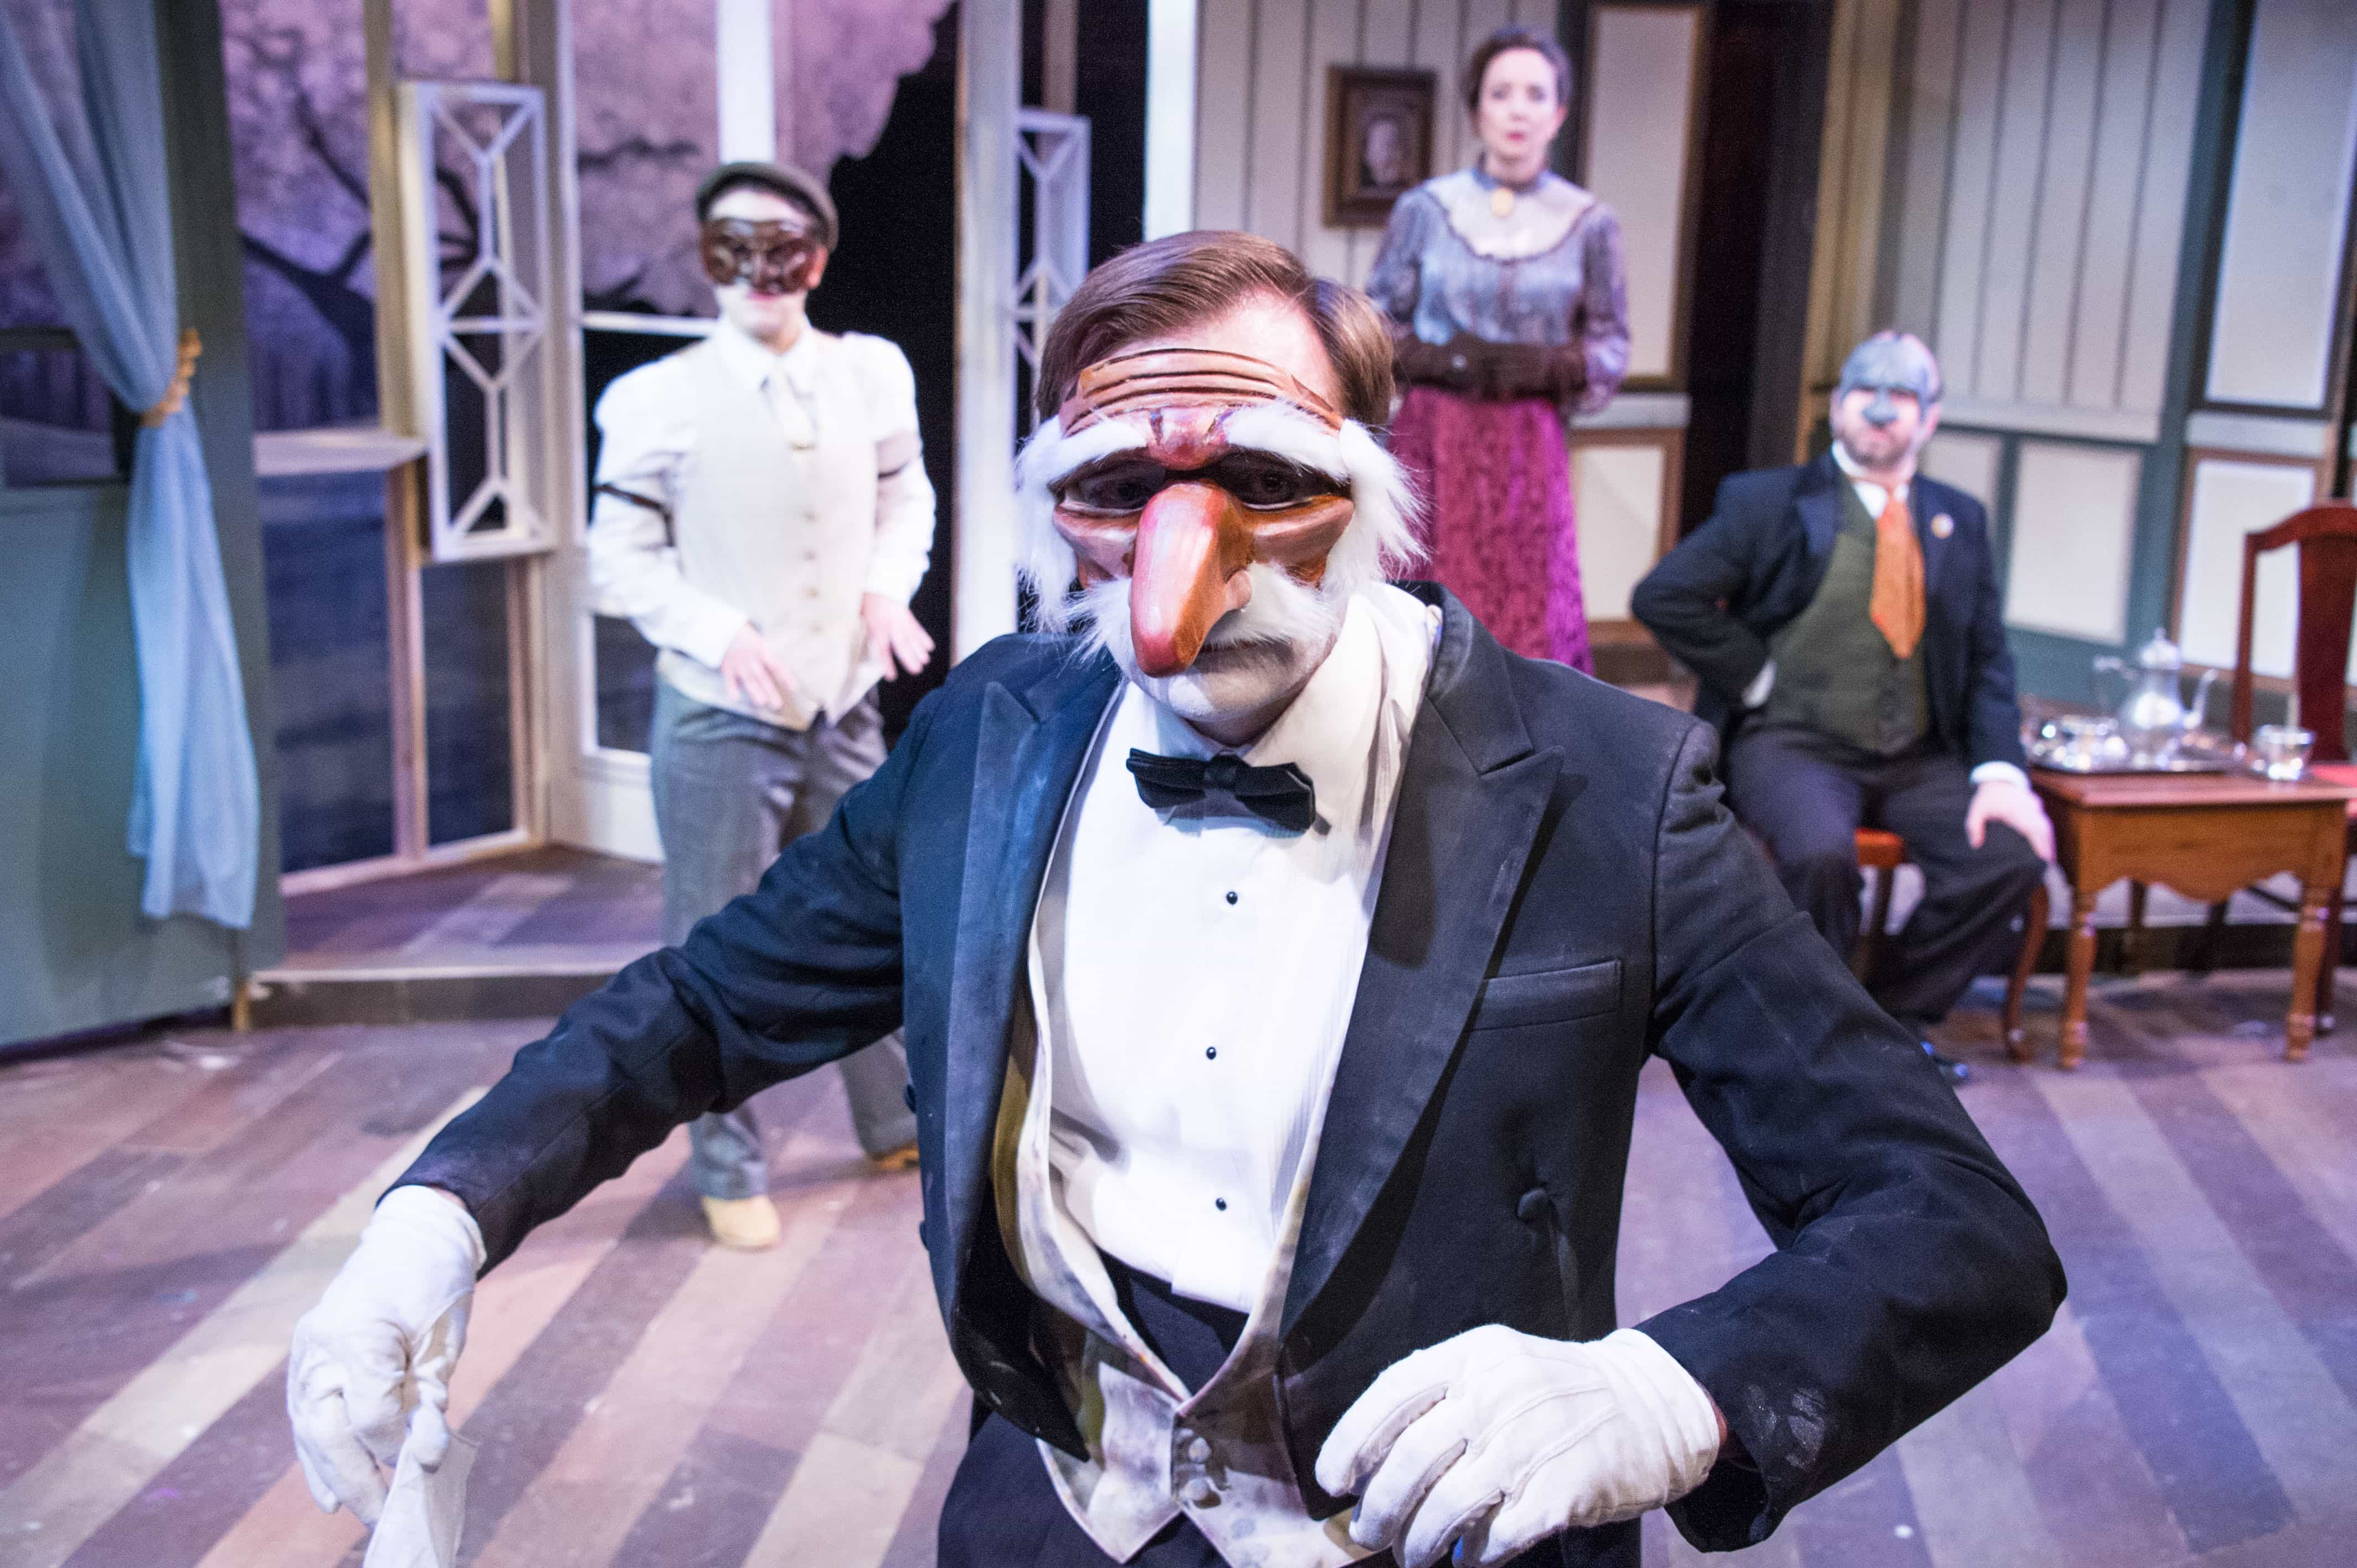 Jack Novak (foreground), Kathryn Zoerb, Sara Barker, and Jesse Terrill (background) in The Cherry Orchard. Photo by C. Stanley Photography.